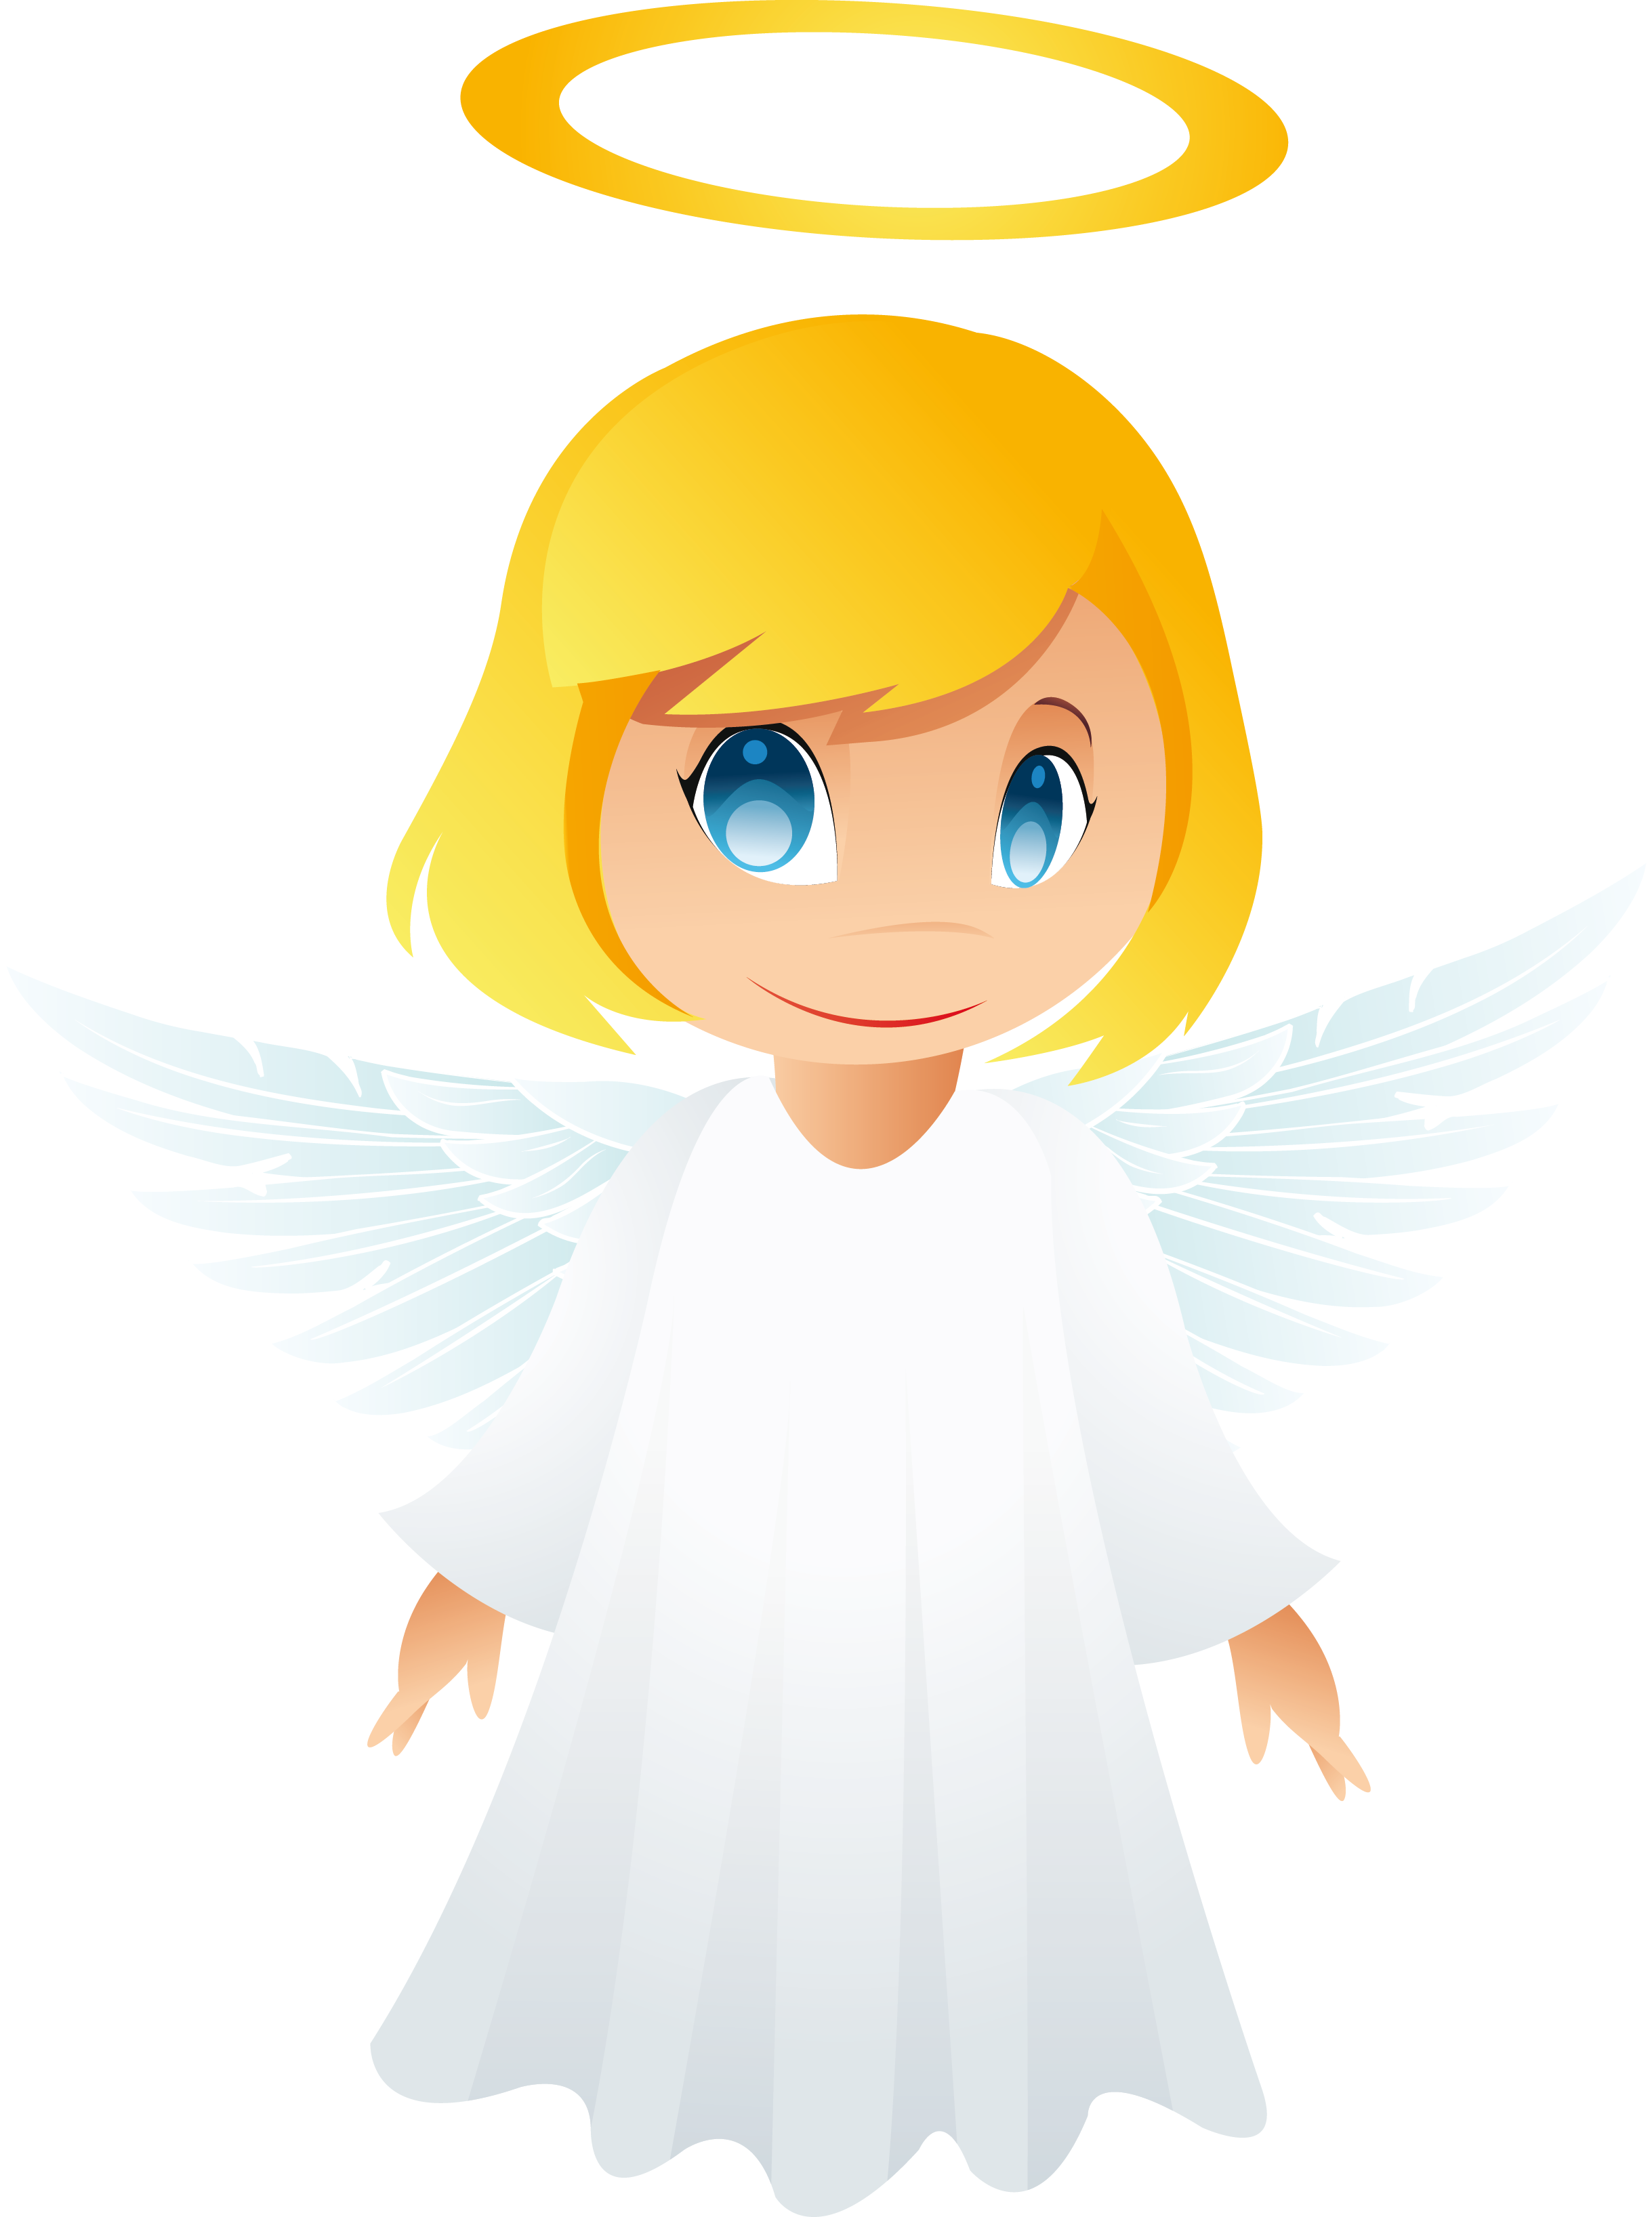 angel clipart free graphics of cherubs and angels the cliparts rh pinterest com free angel clipart images angel clipart free download